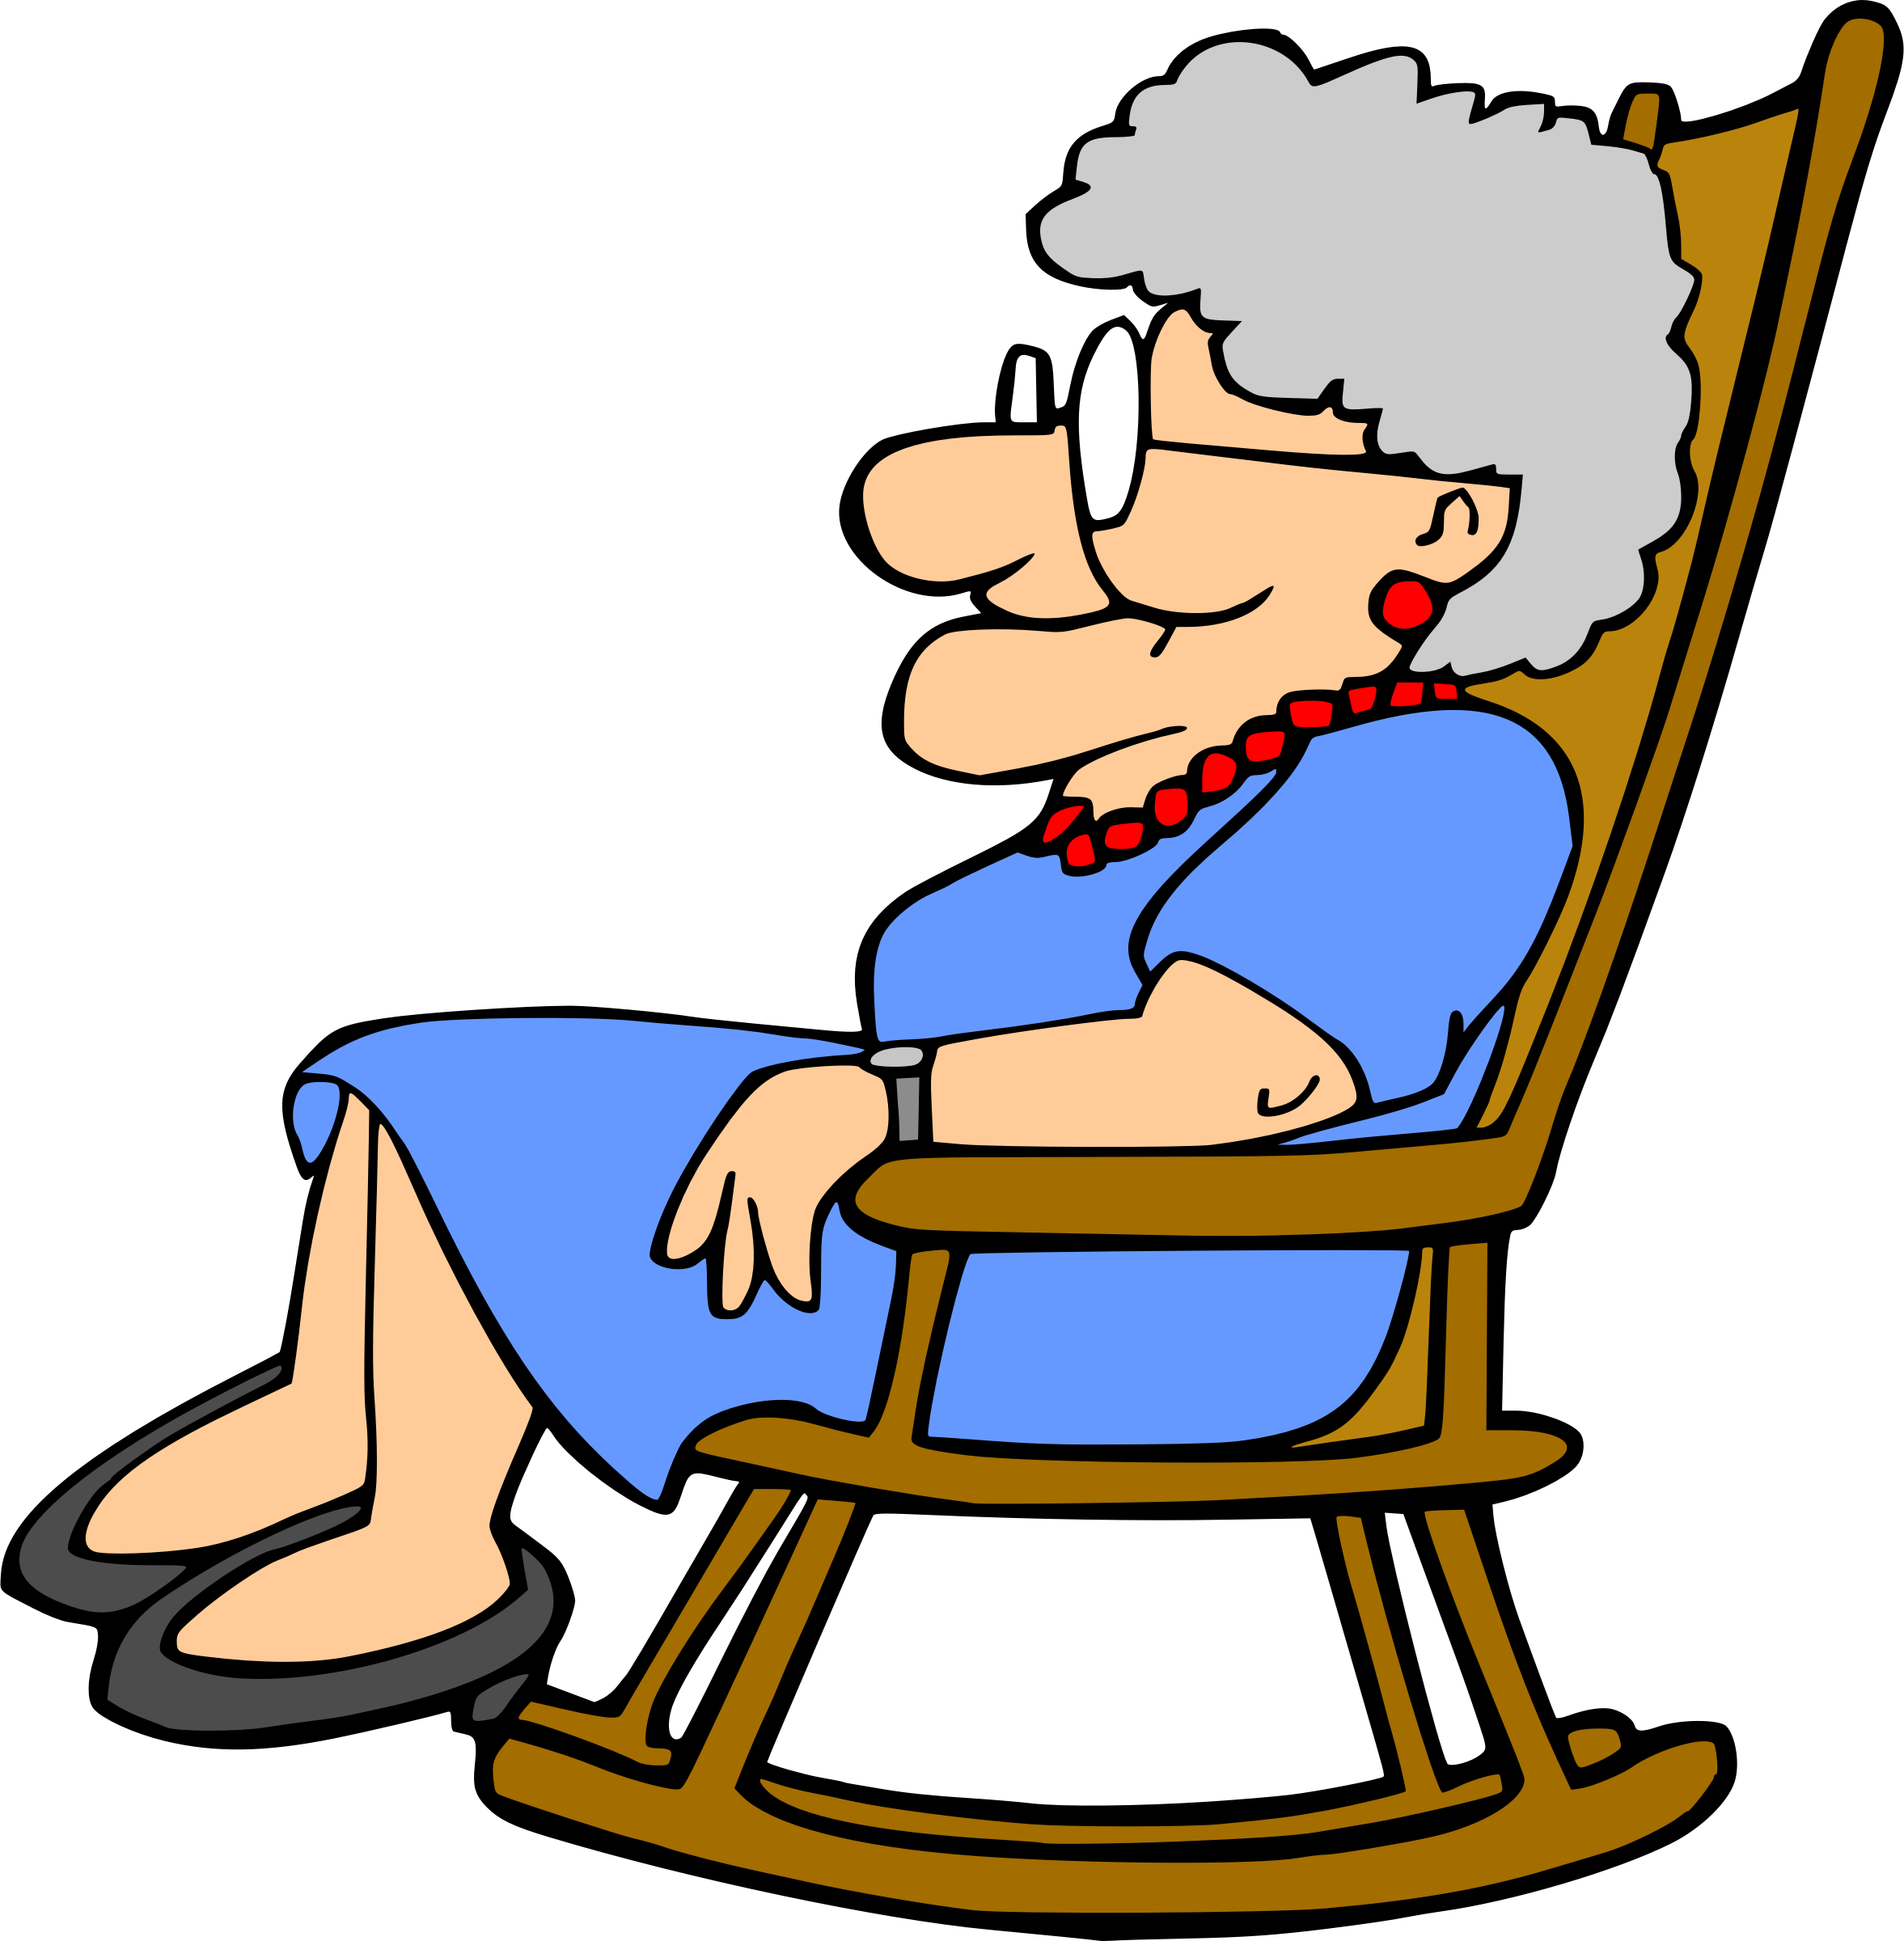 Kind clipart grandma.  collection of images